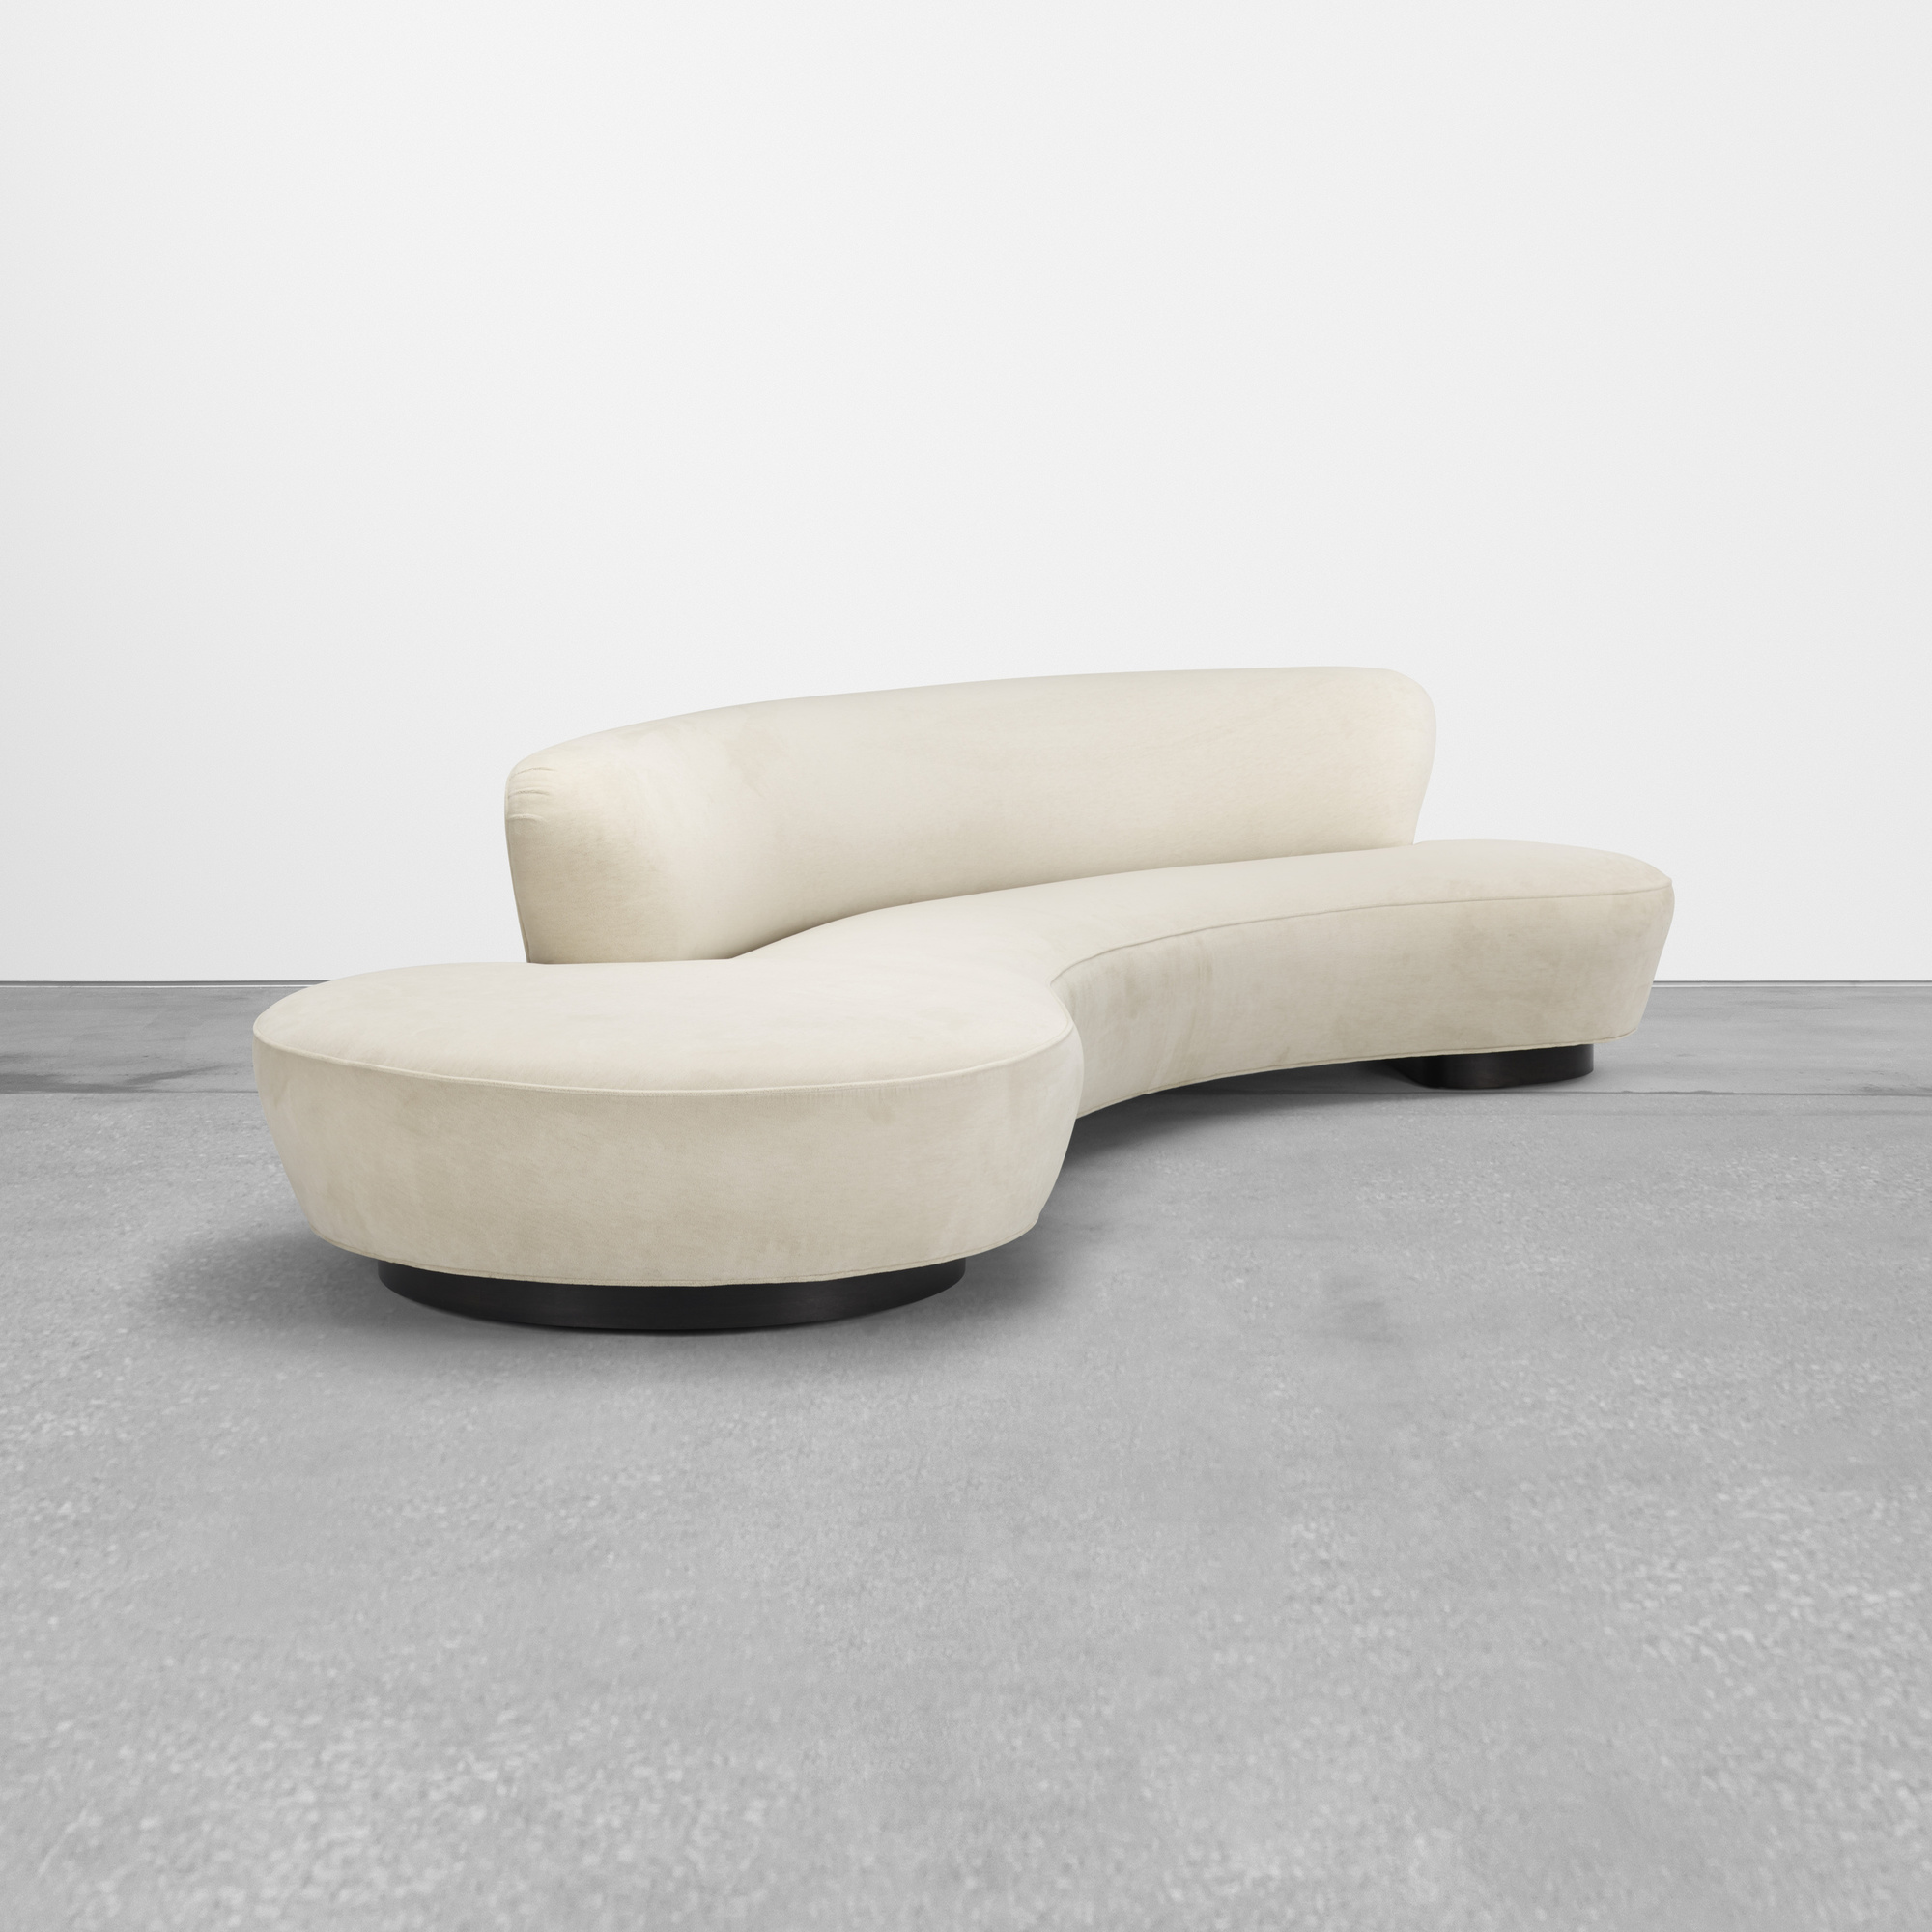 438 Vladimir Kagan Serpentine Sofa 1 Of 3